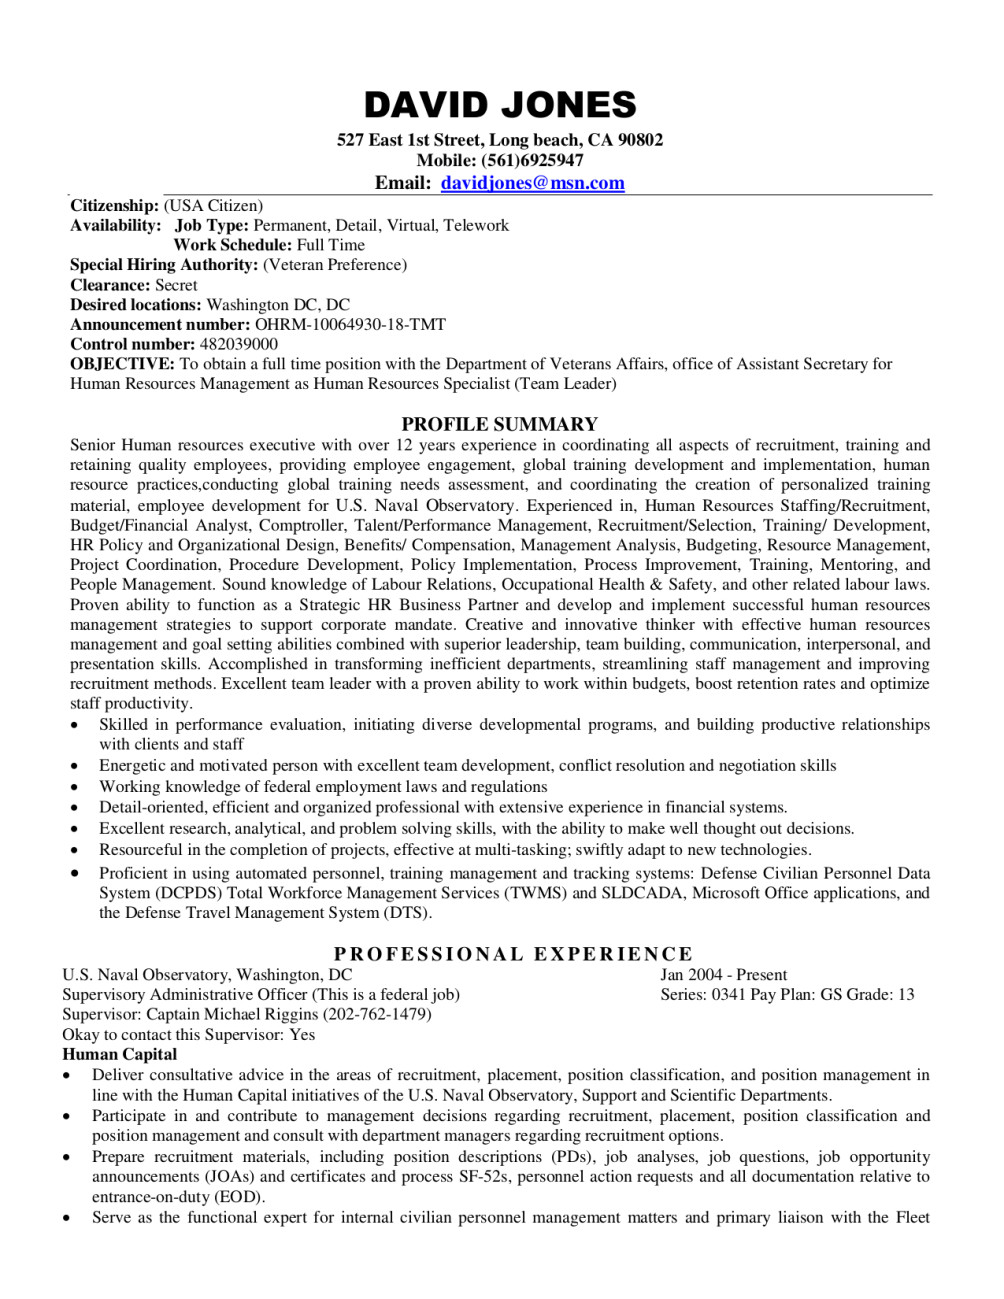 rewrite FEDERAL resume, USAJOBS cover letter, Ecq.